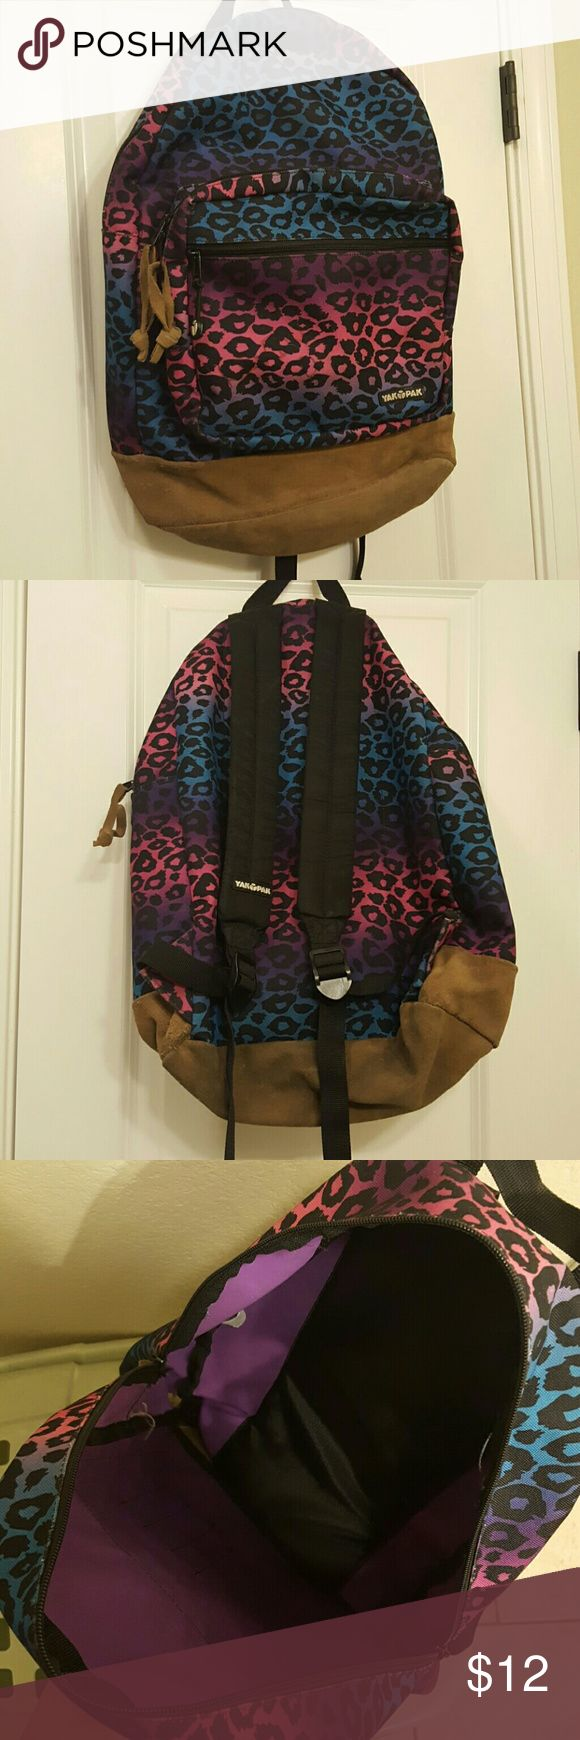 Rainbow Animal Print Backpack Durable backpack with lots of space. 2 front pockets are very deep, providing plenty of extra room for smaller items. All but 2 zippers have a suede tie that matches the bottom of the backpack - one zipper on the main part of the backpack lost its tie & the zipper on the smallest pocket has pull of the company logo that manufactured the backpack.   In extremely good condition, no holes & all zippers function properly & easily as they should. Selling only because…